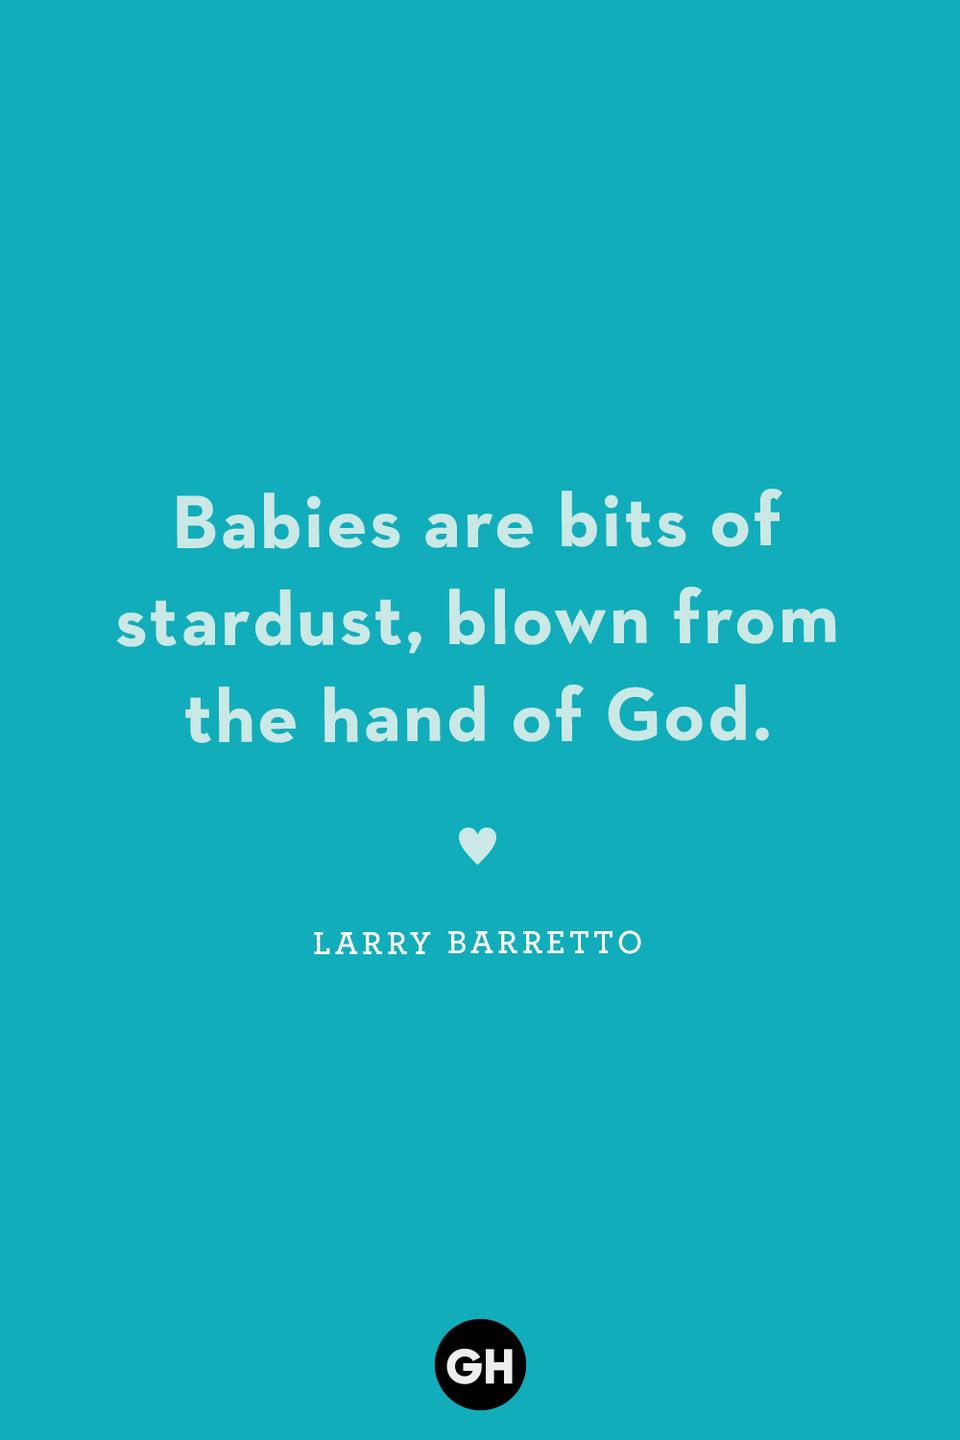 <p>Babies are bits of stardust, blown from the hand of God.</p>